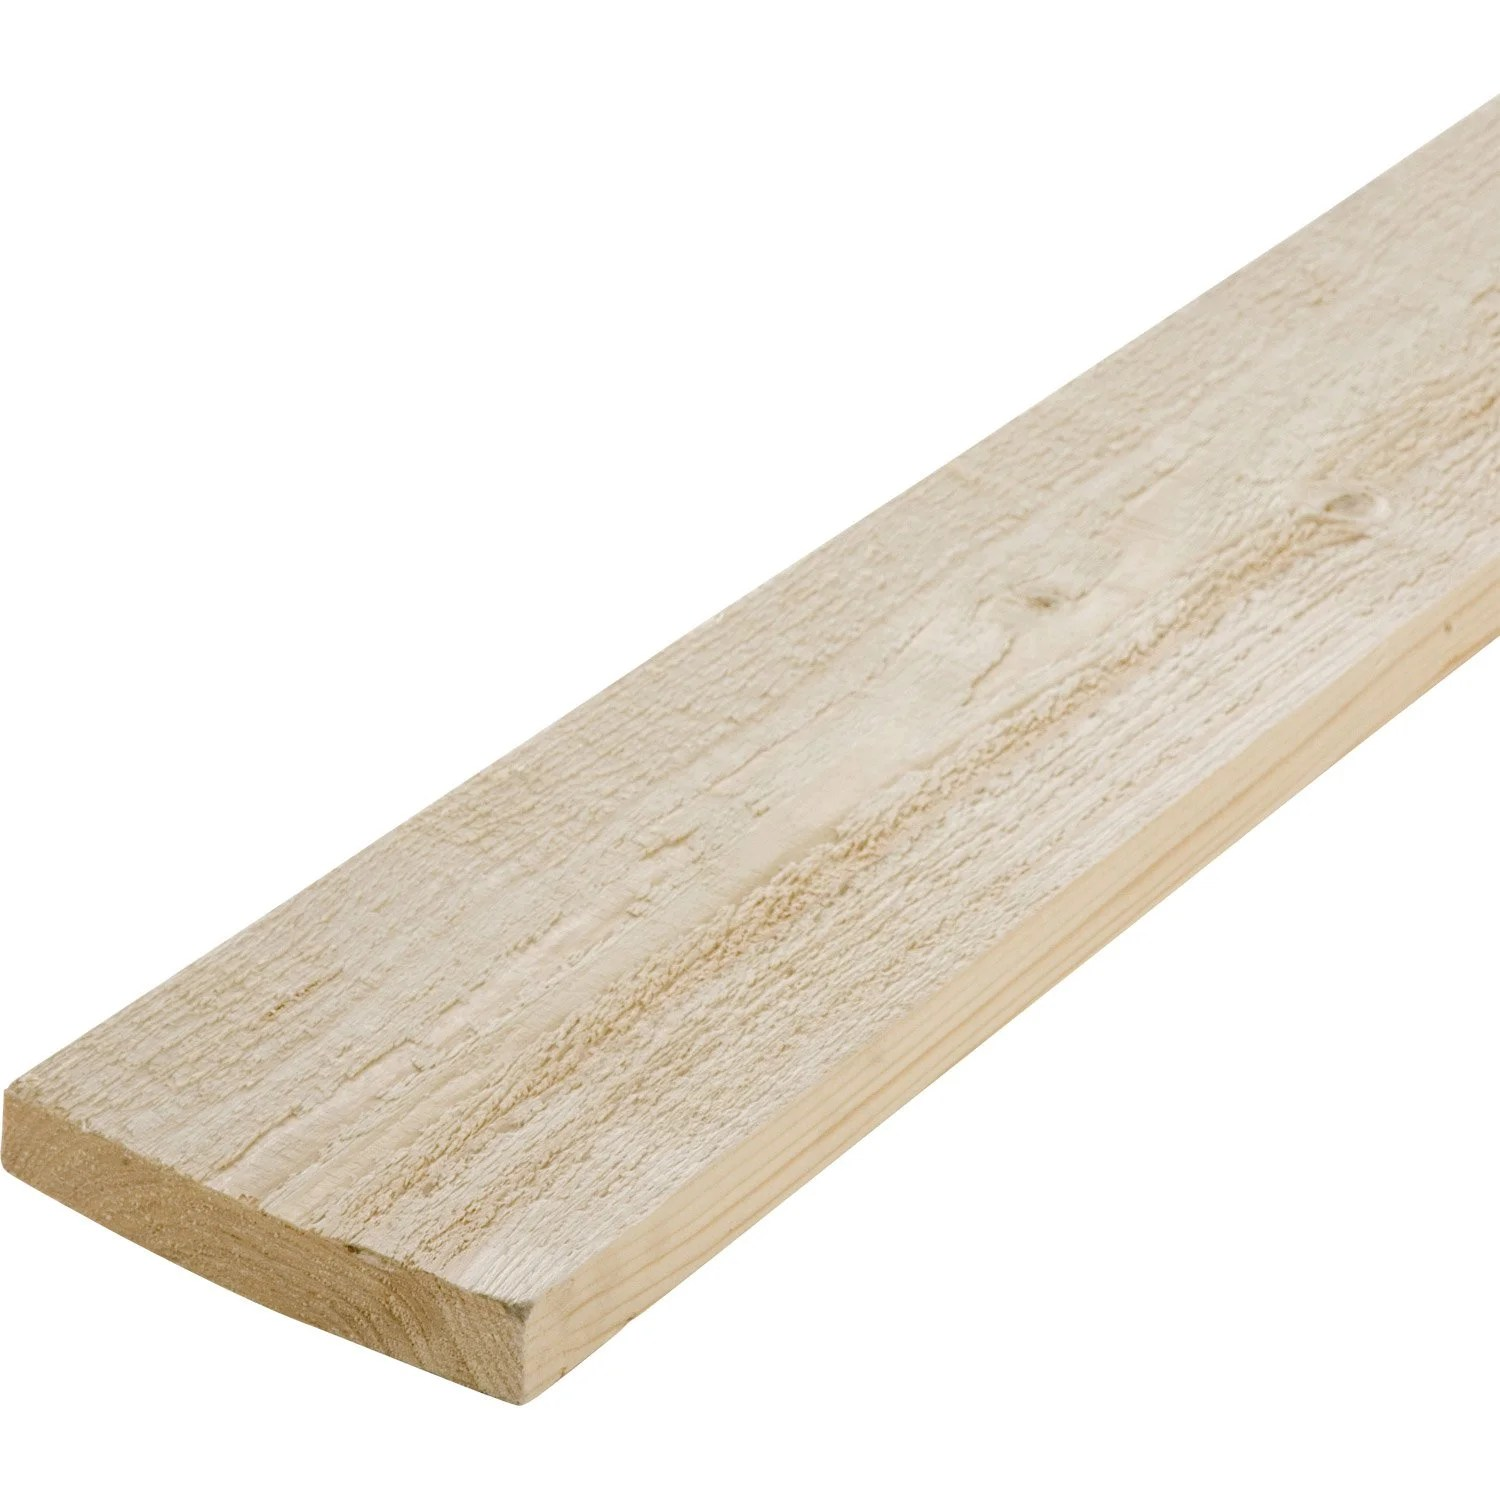 Plancher Pin Leroy Merlin Planche Sapin Petits Noeuds Brut 25 X 150 Mm L 2 4 M